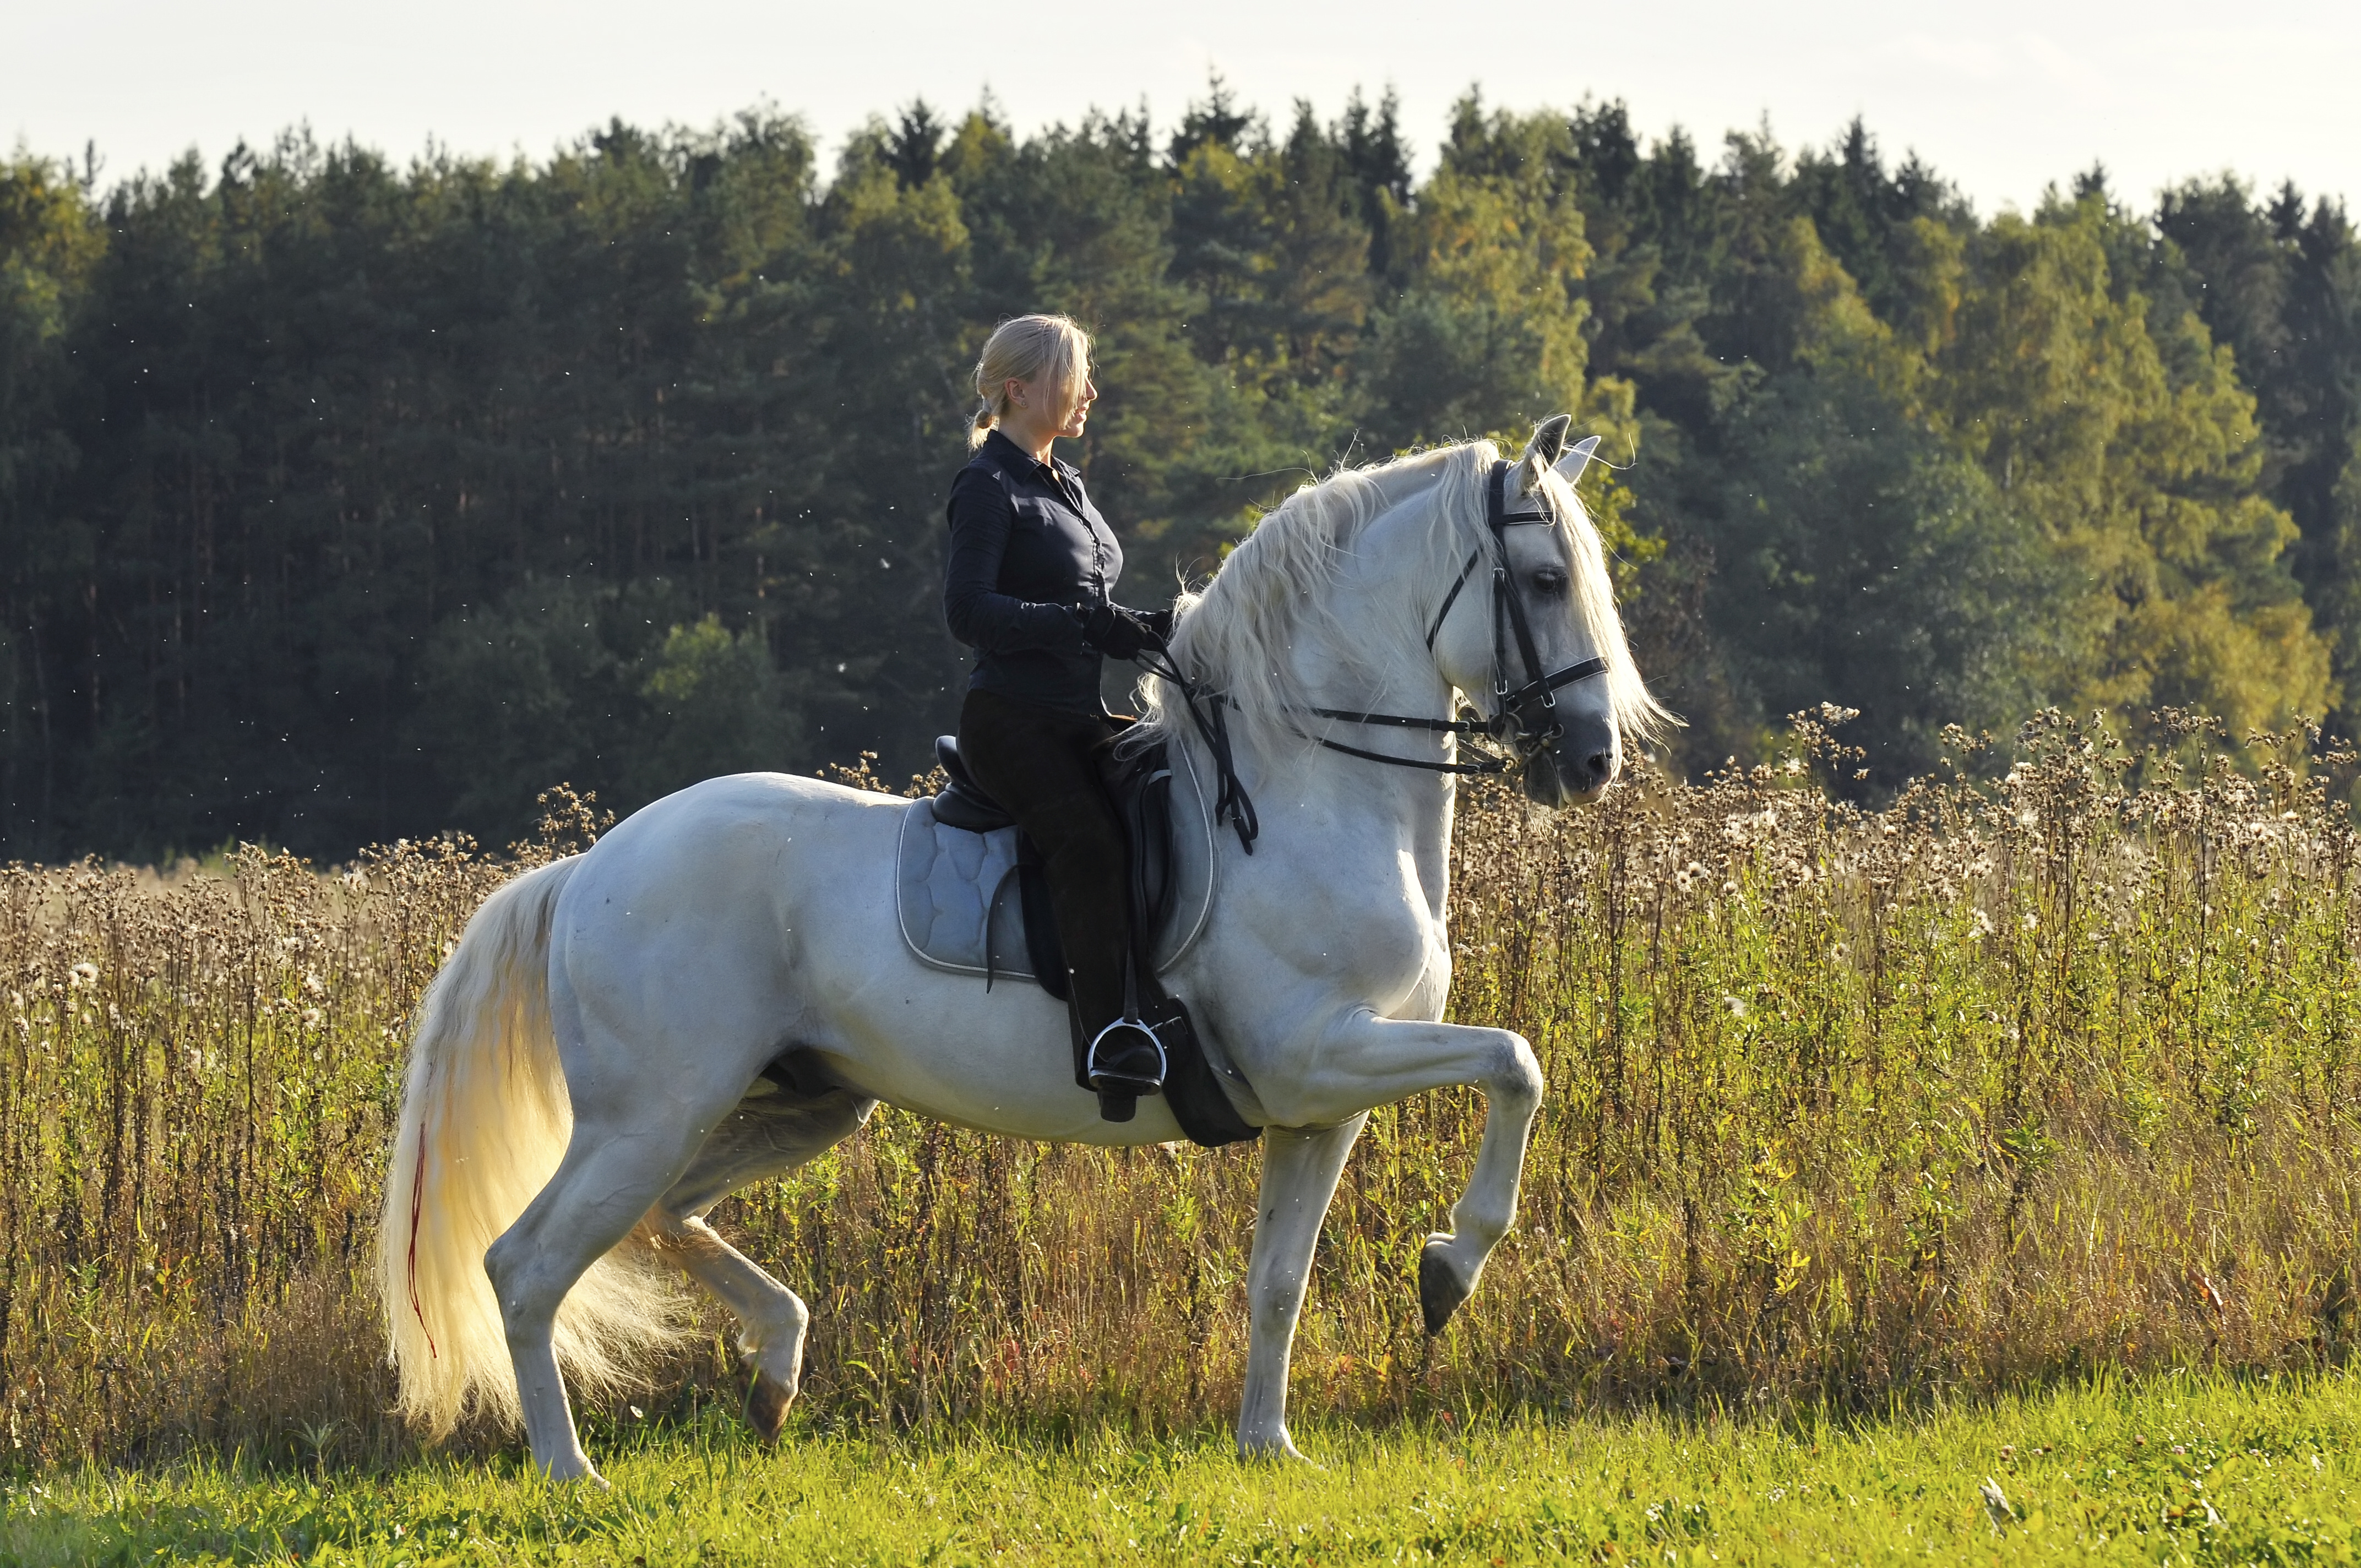 Woman in show attire riding a white andalusian horse